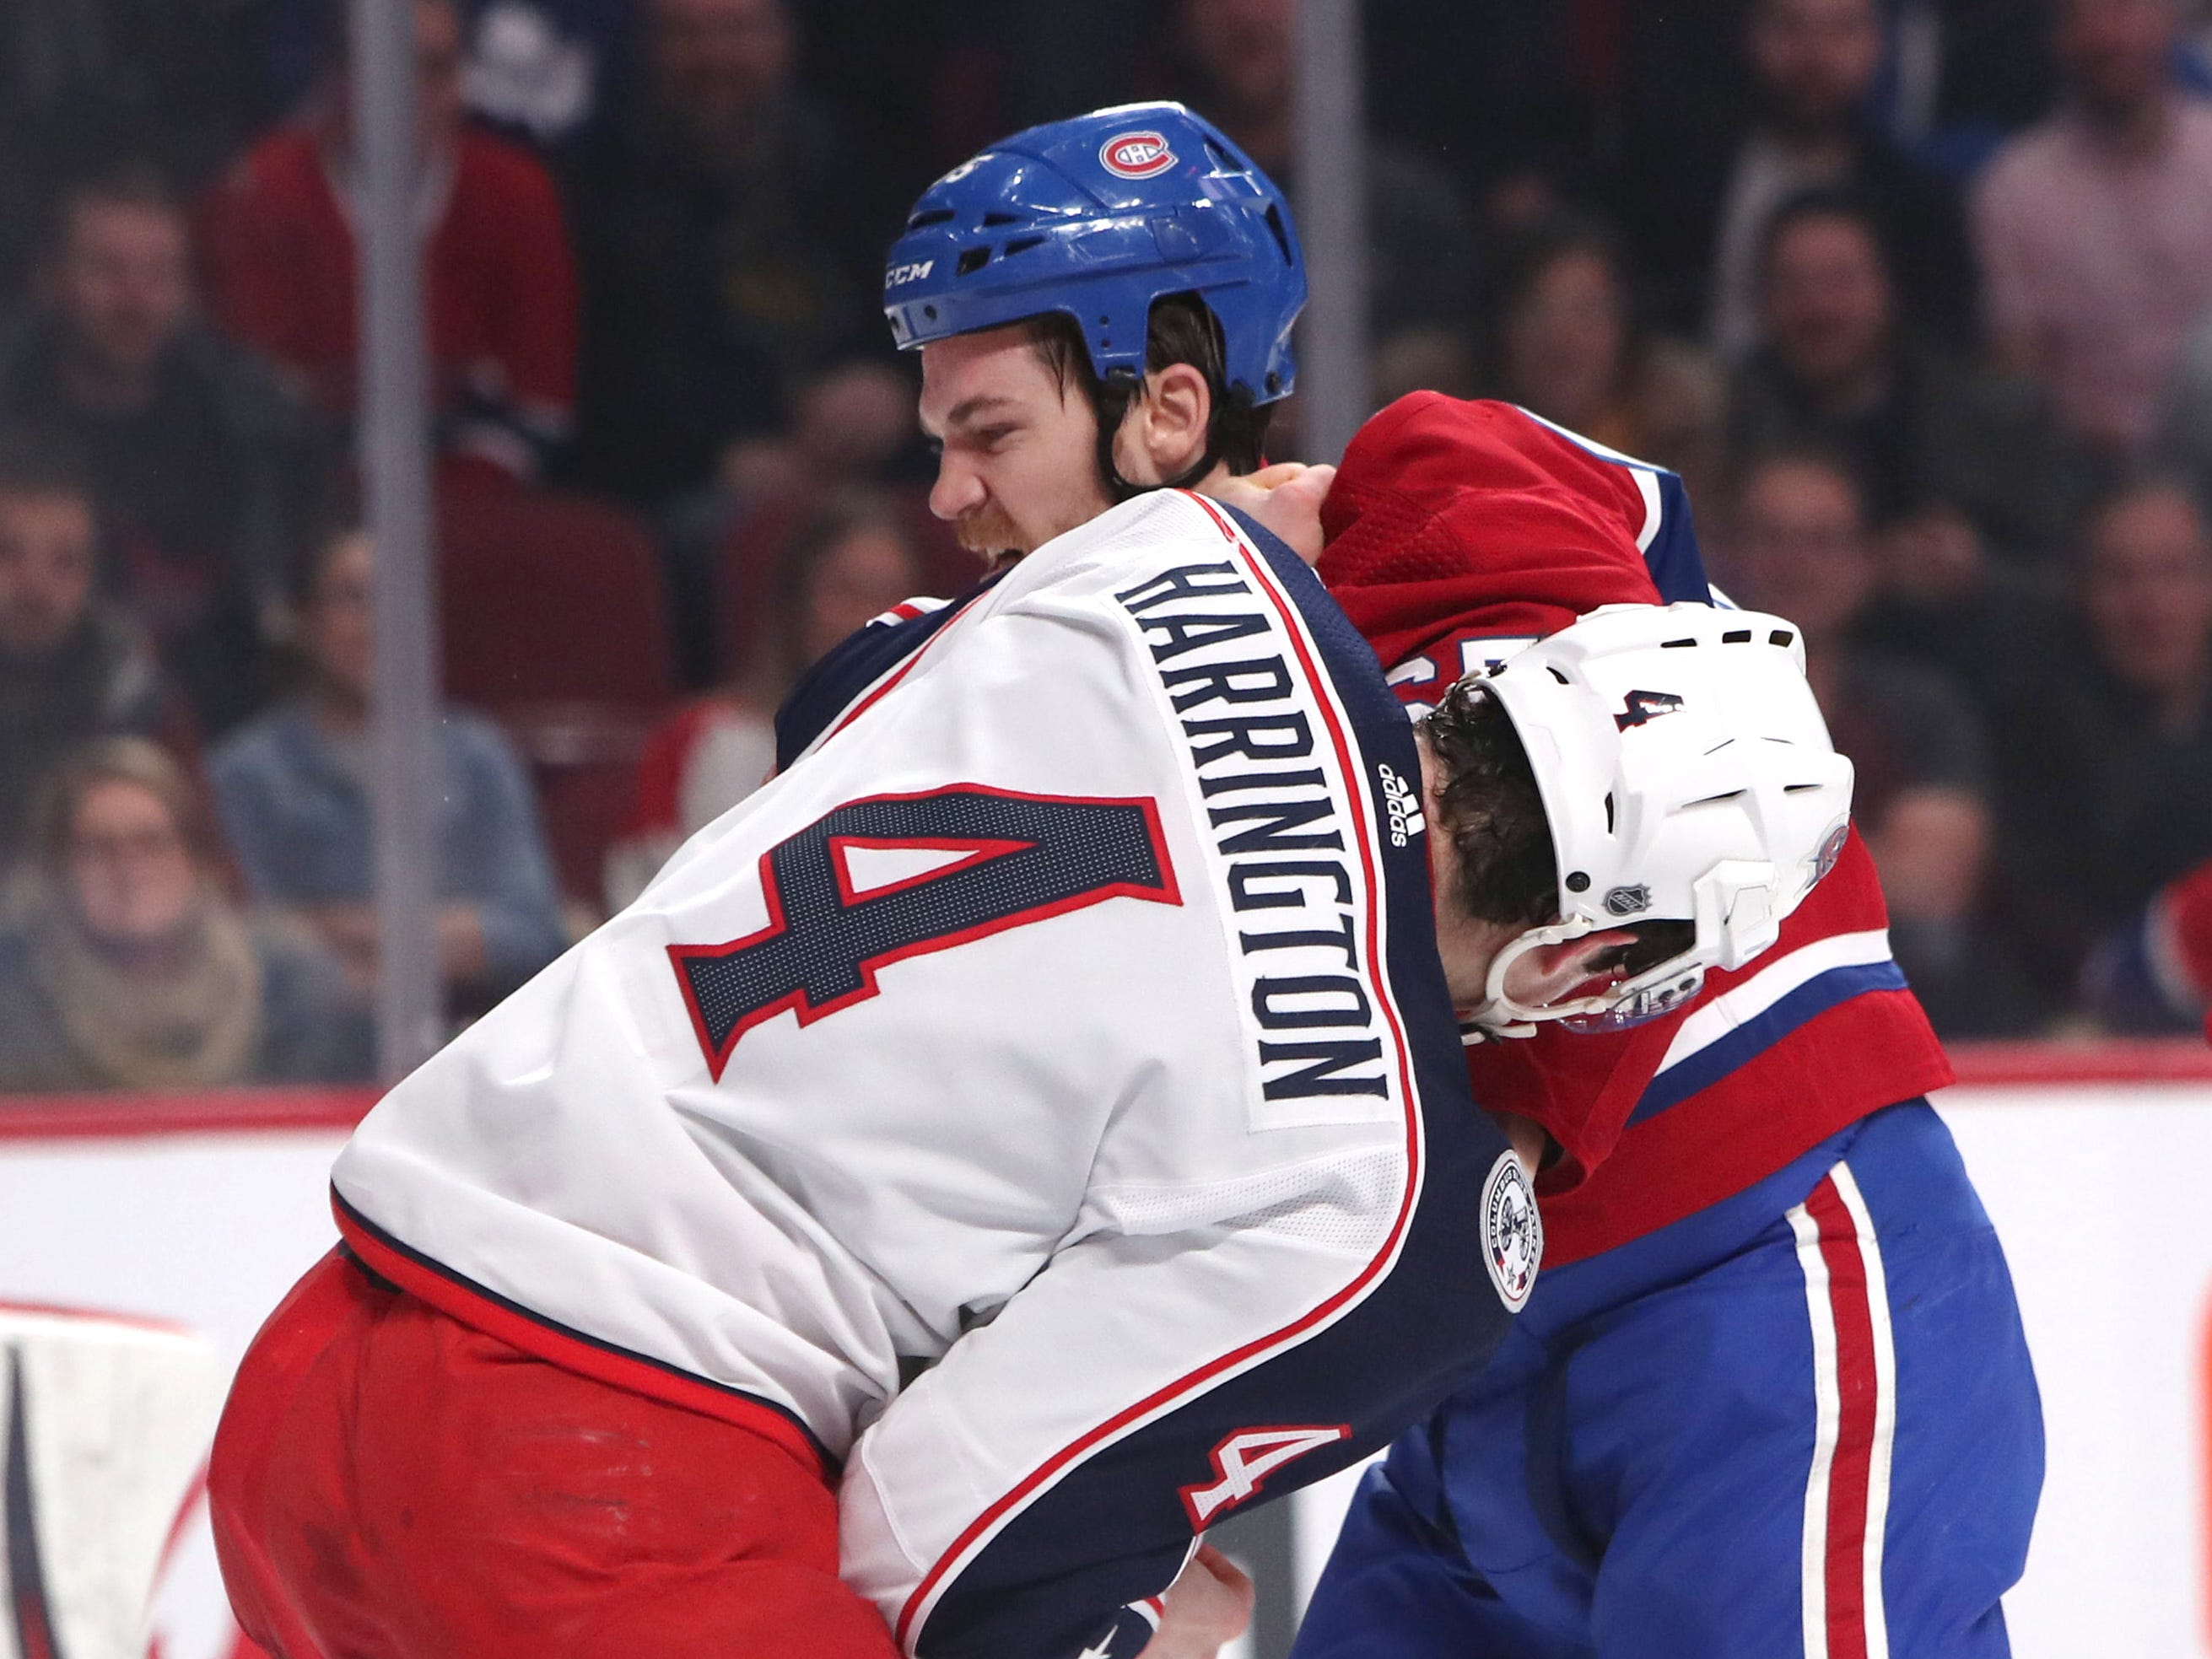 Feb. 19: Montreal Canadiens' Andrew Shaw vs. Columbus Blue Jackets' Scott Harrington